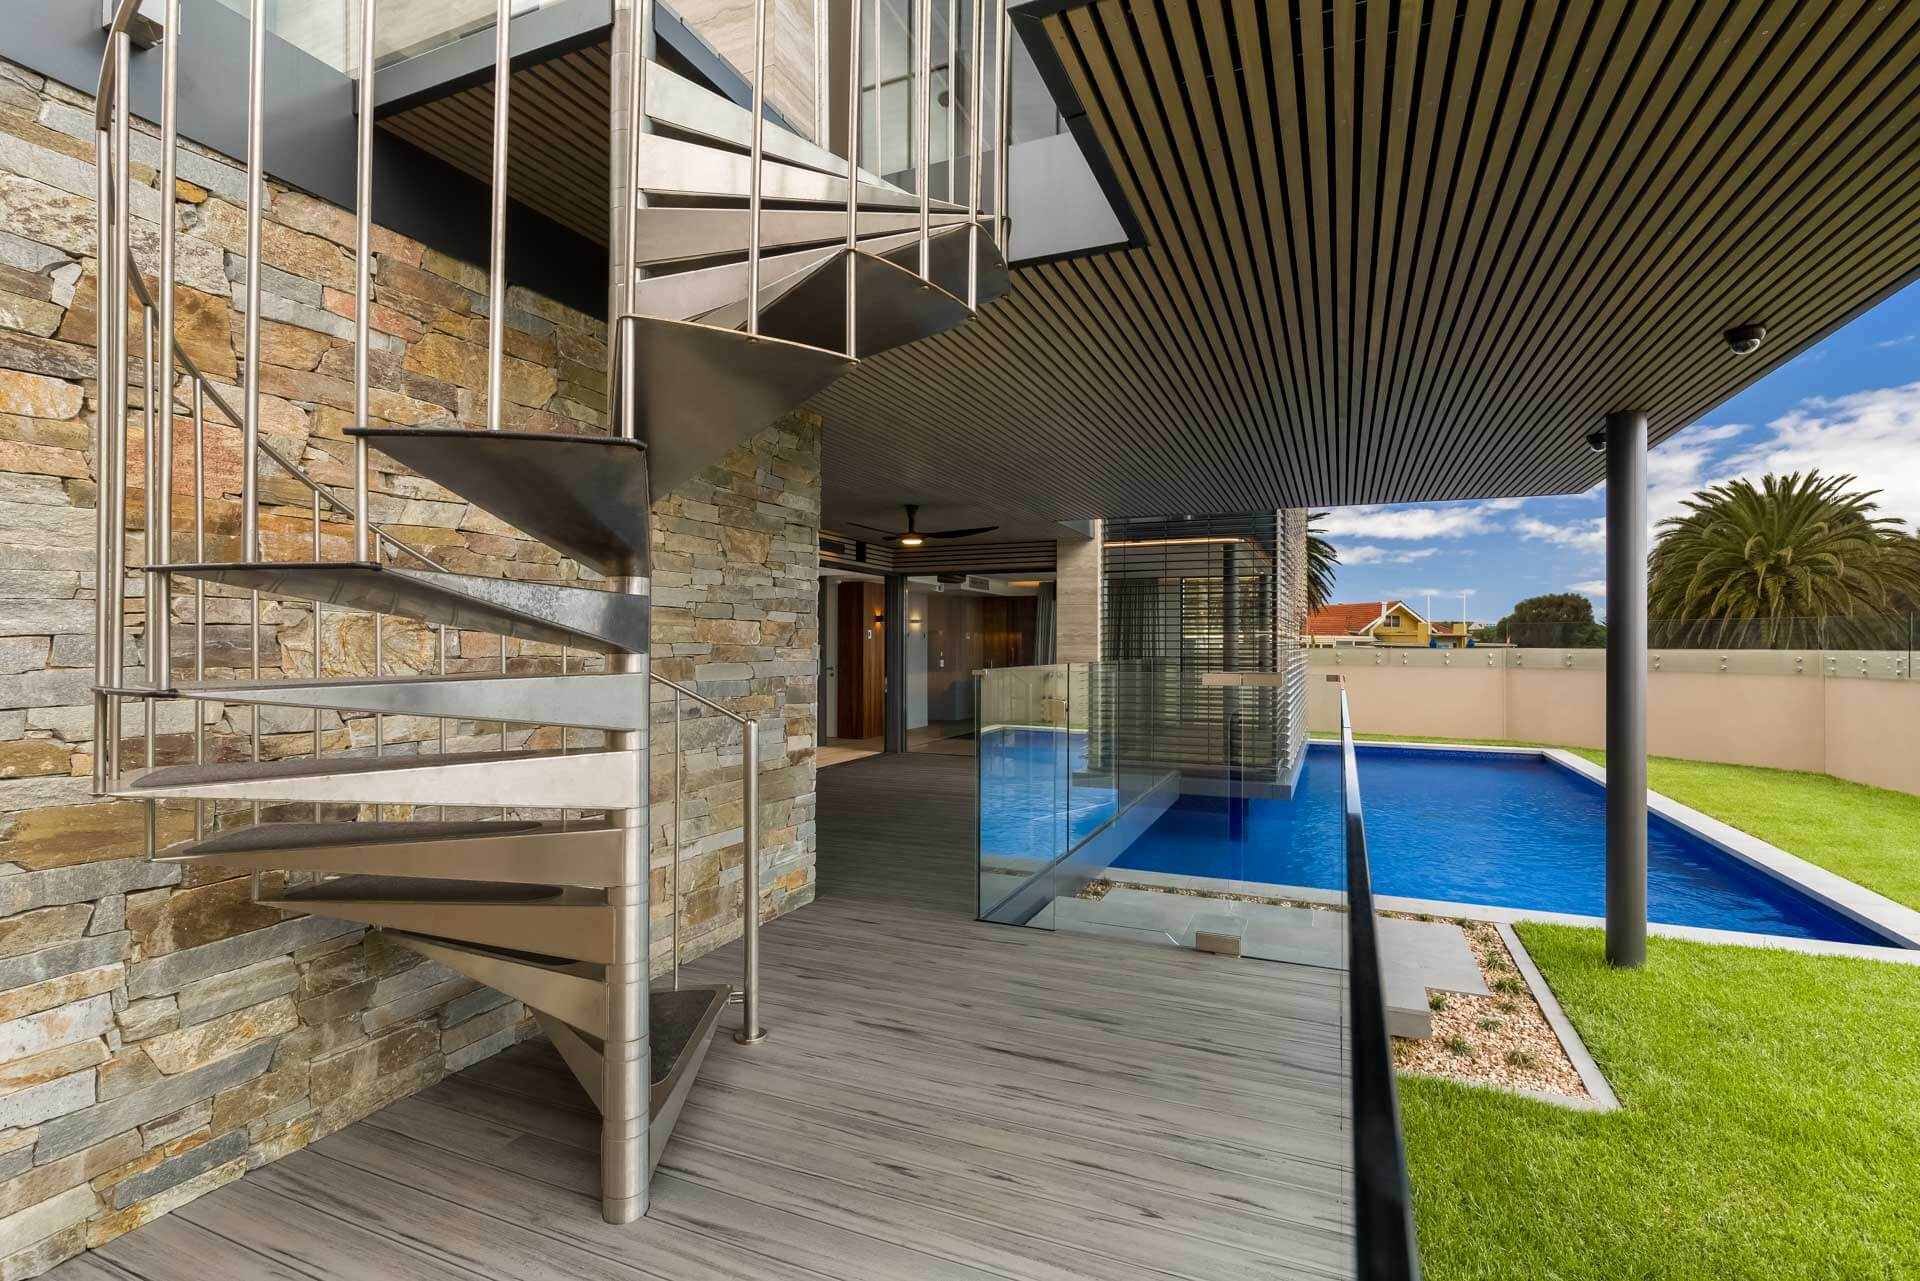 photograph of alfresco deck area with pool and spiral stainless steel staircase and grass garden in Brighton bayside home renovation in melbourne